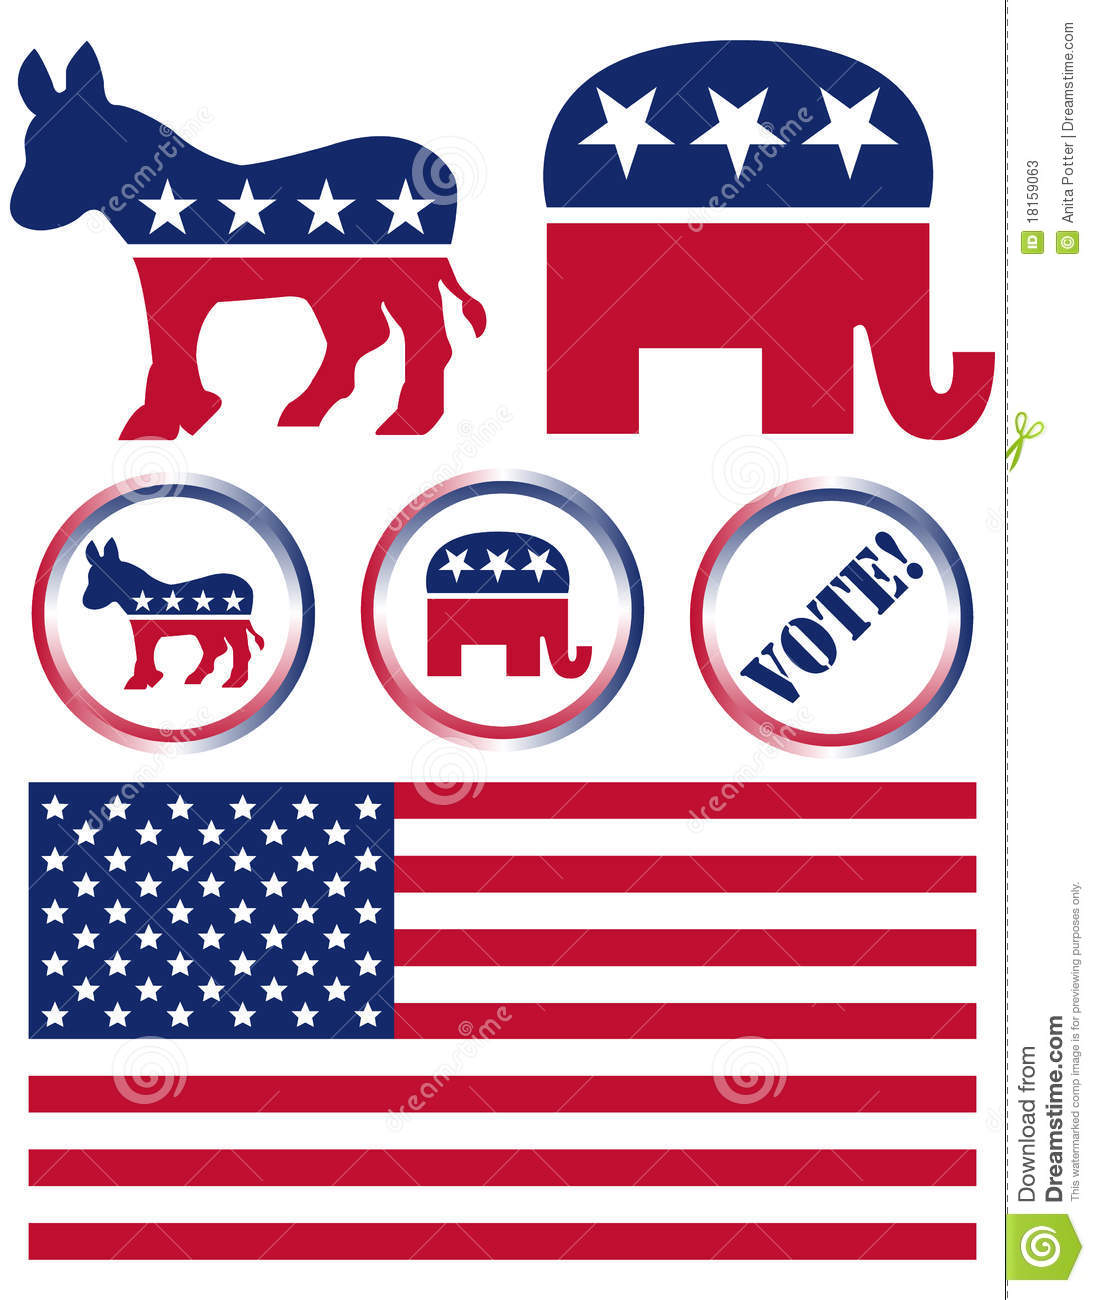 Set Of United States Political Party Symbols Editorial